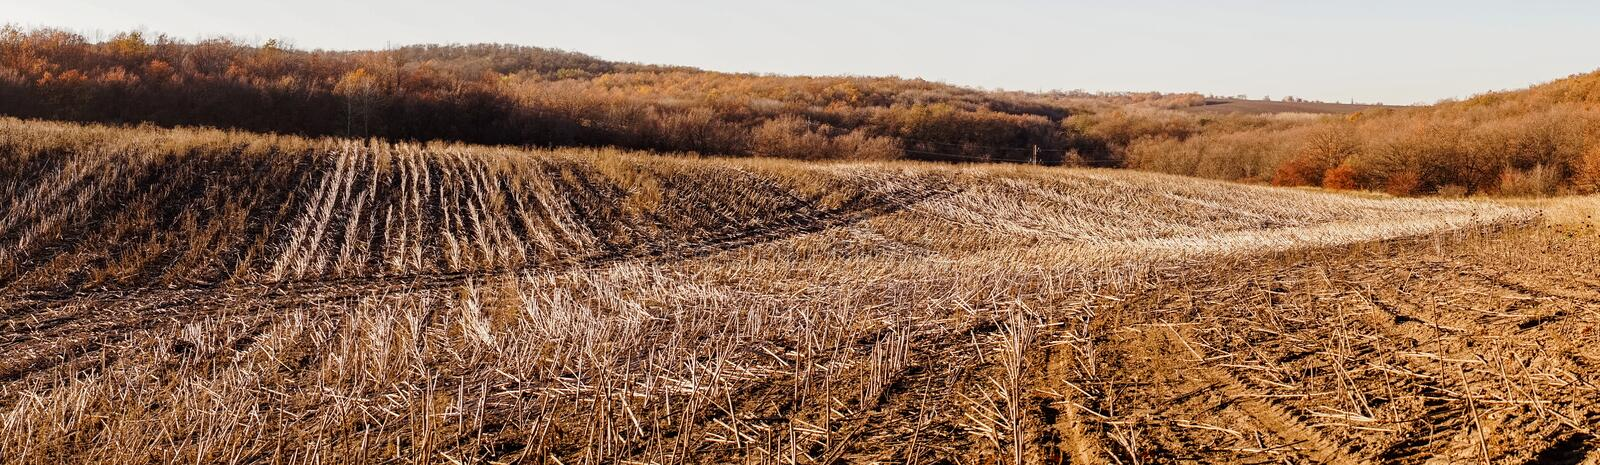 Agricultural autumn landscape in New England, USA royalty free stock images